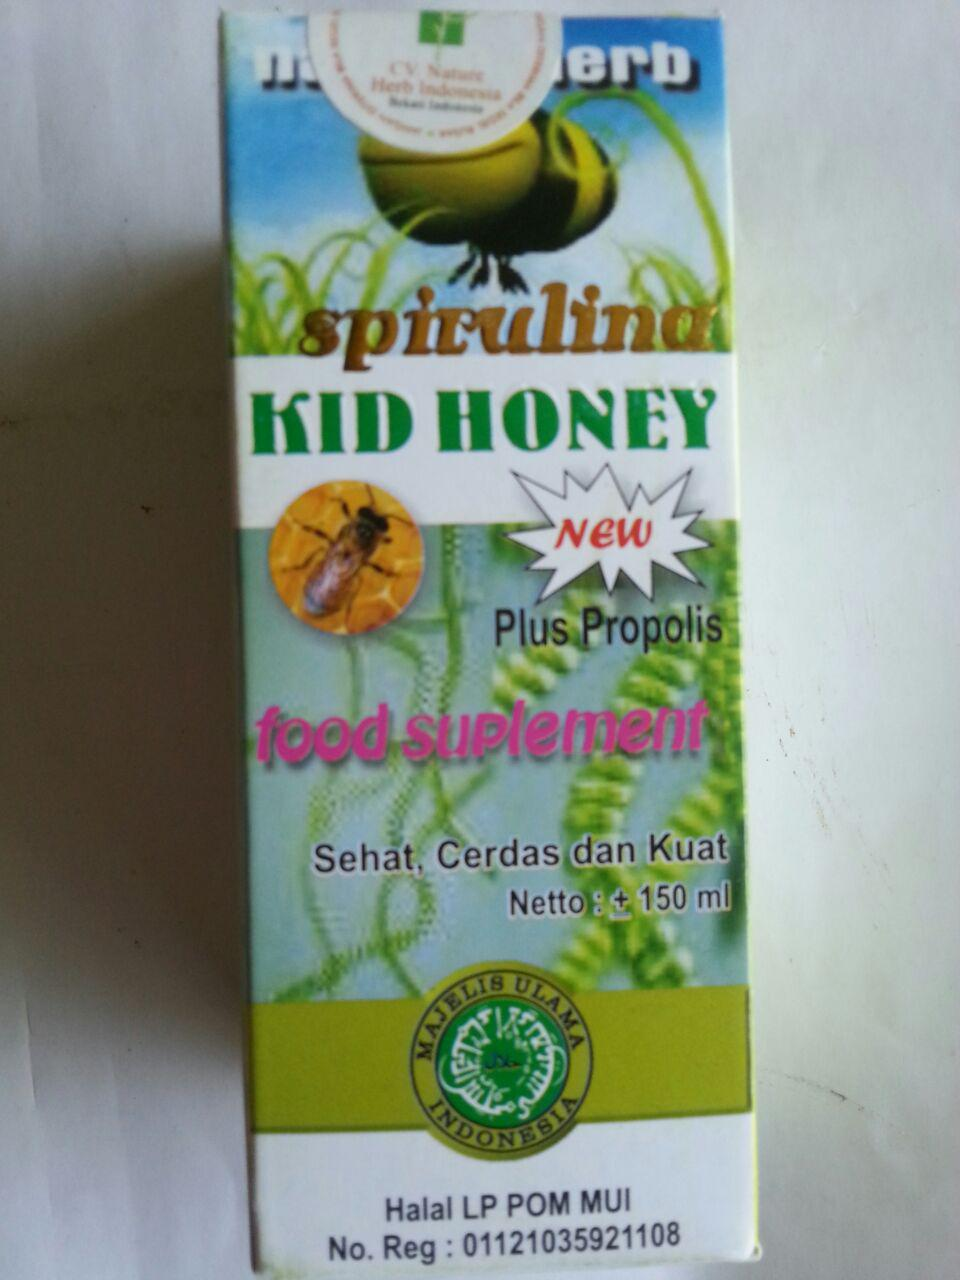 Madu Anak Spirulina Kid Honey New Plus Propolis cover 5